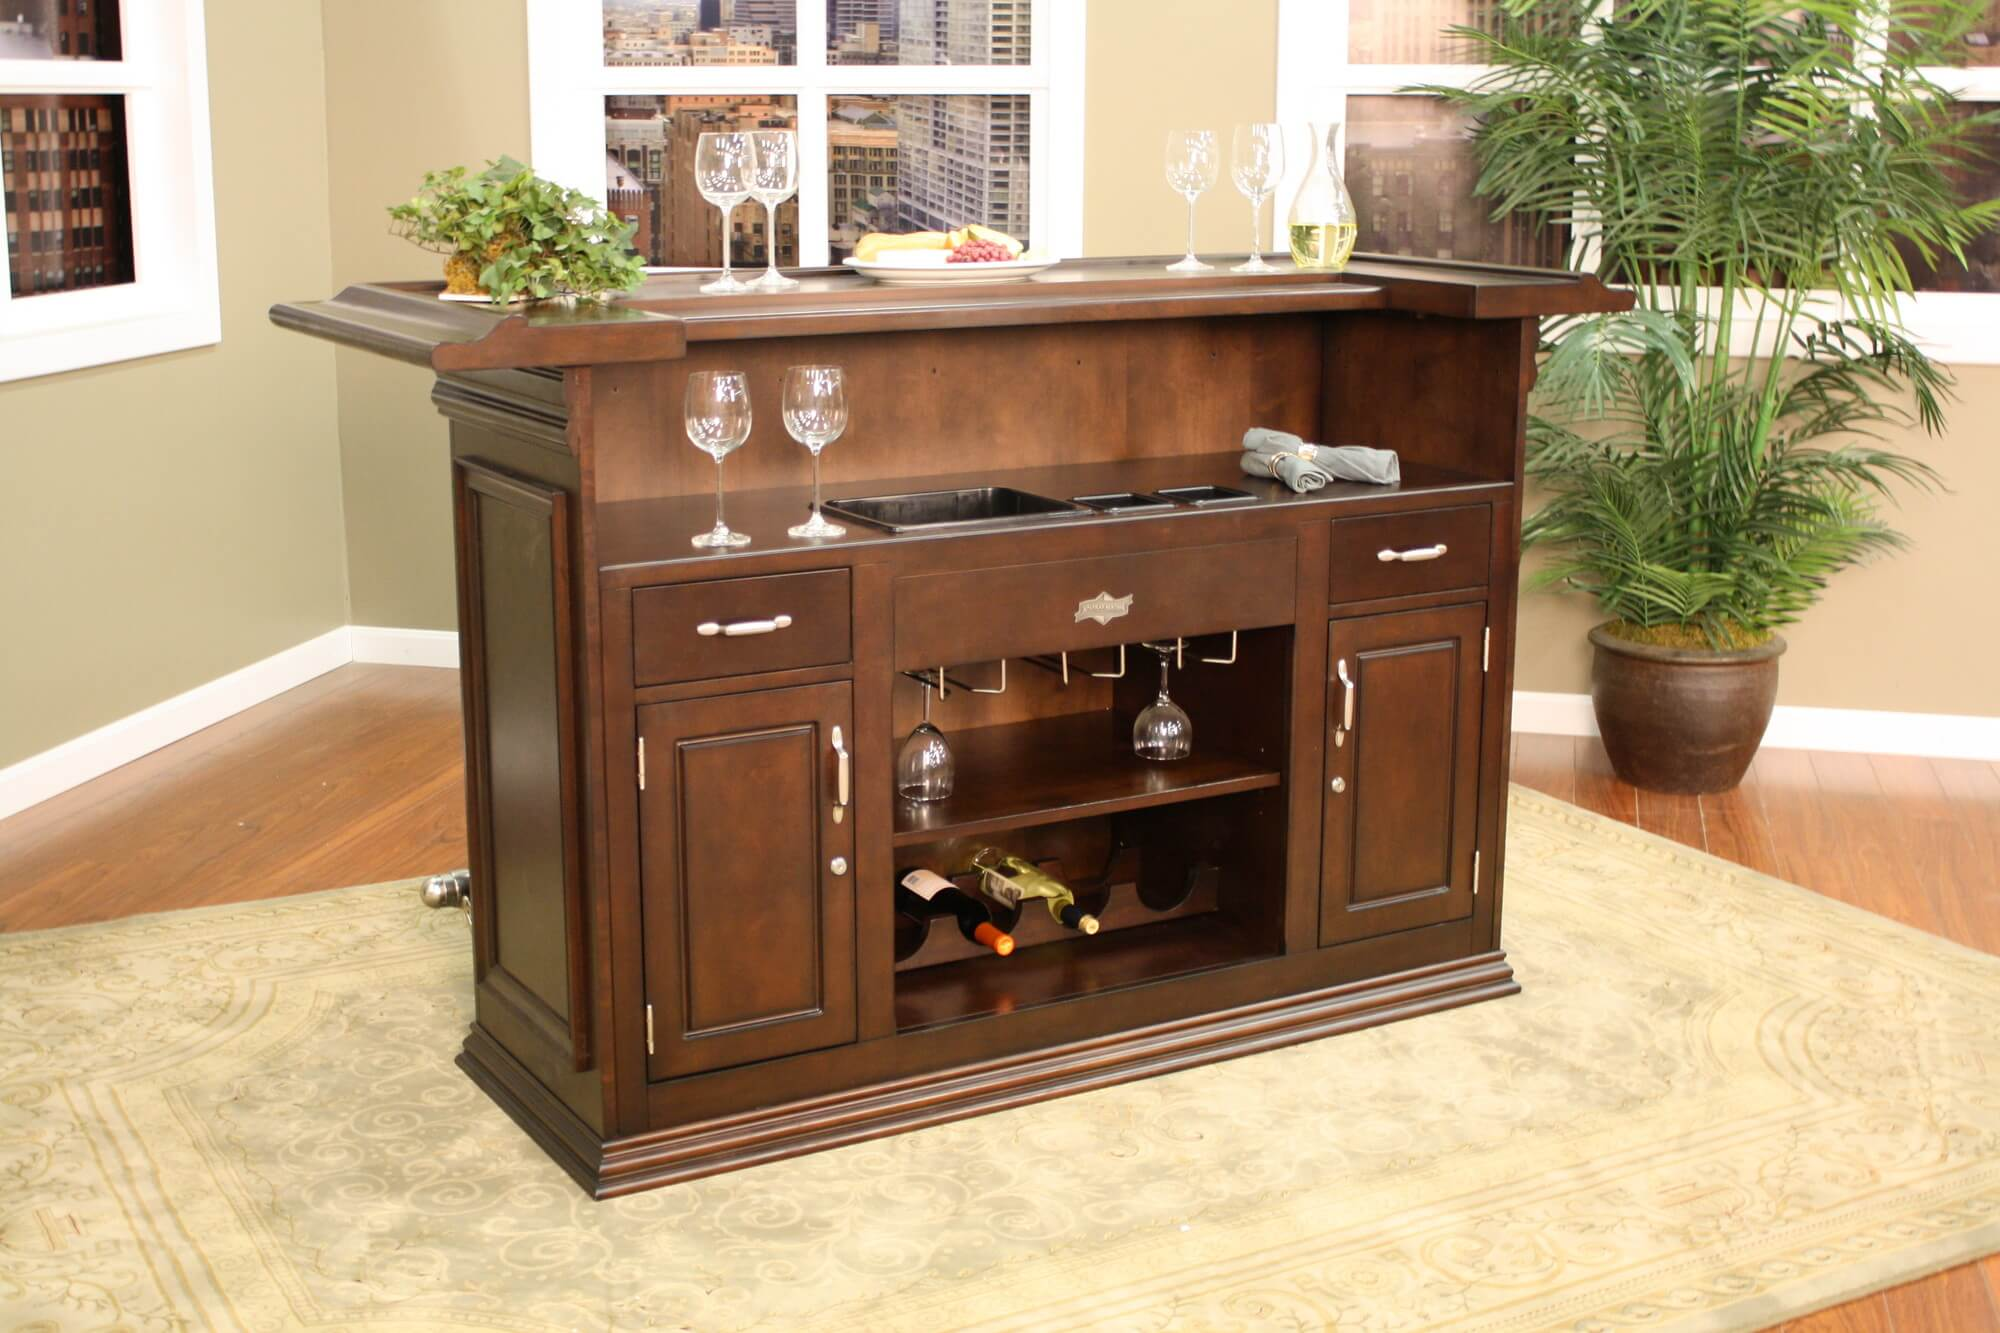 Back end view - For a smaller design, this home bar offers some great  features